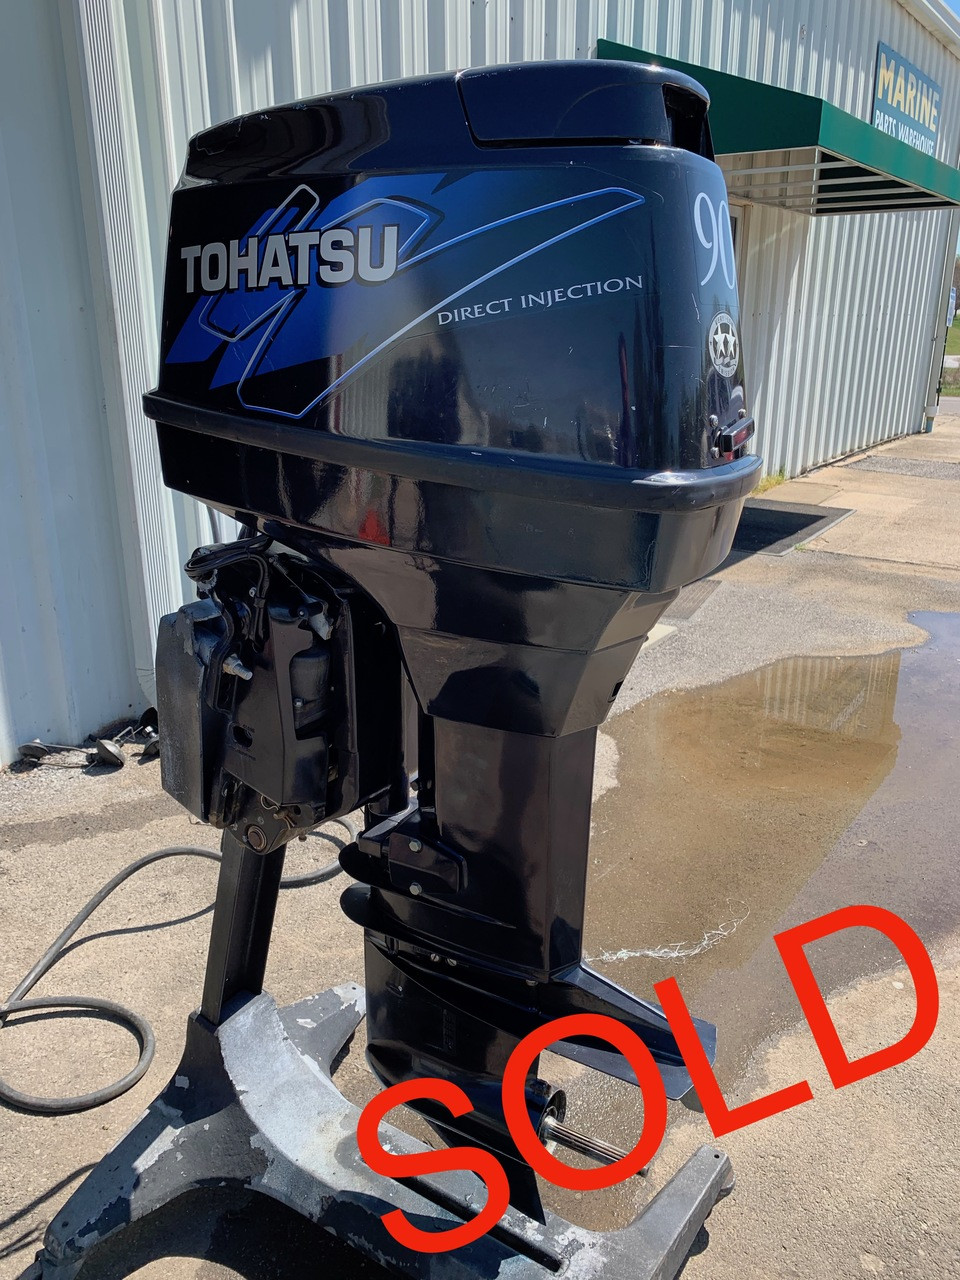 nissan 30 hp outboard reviews